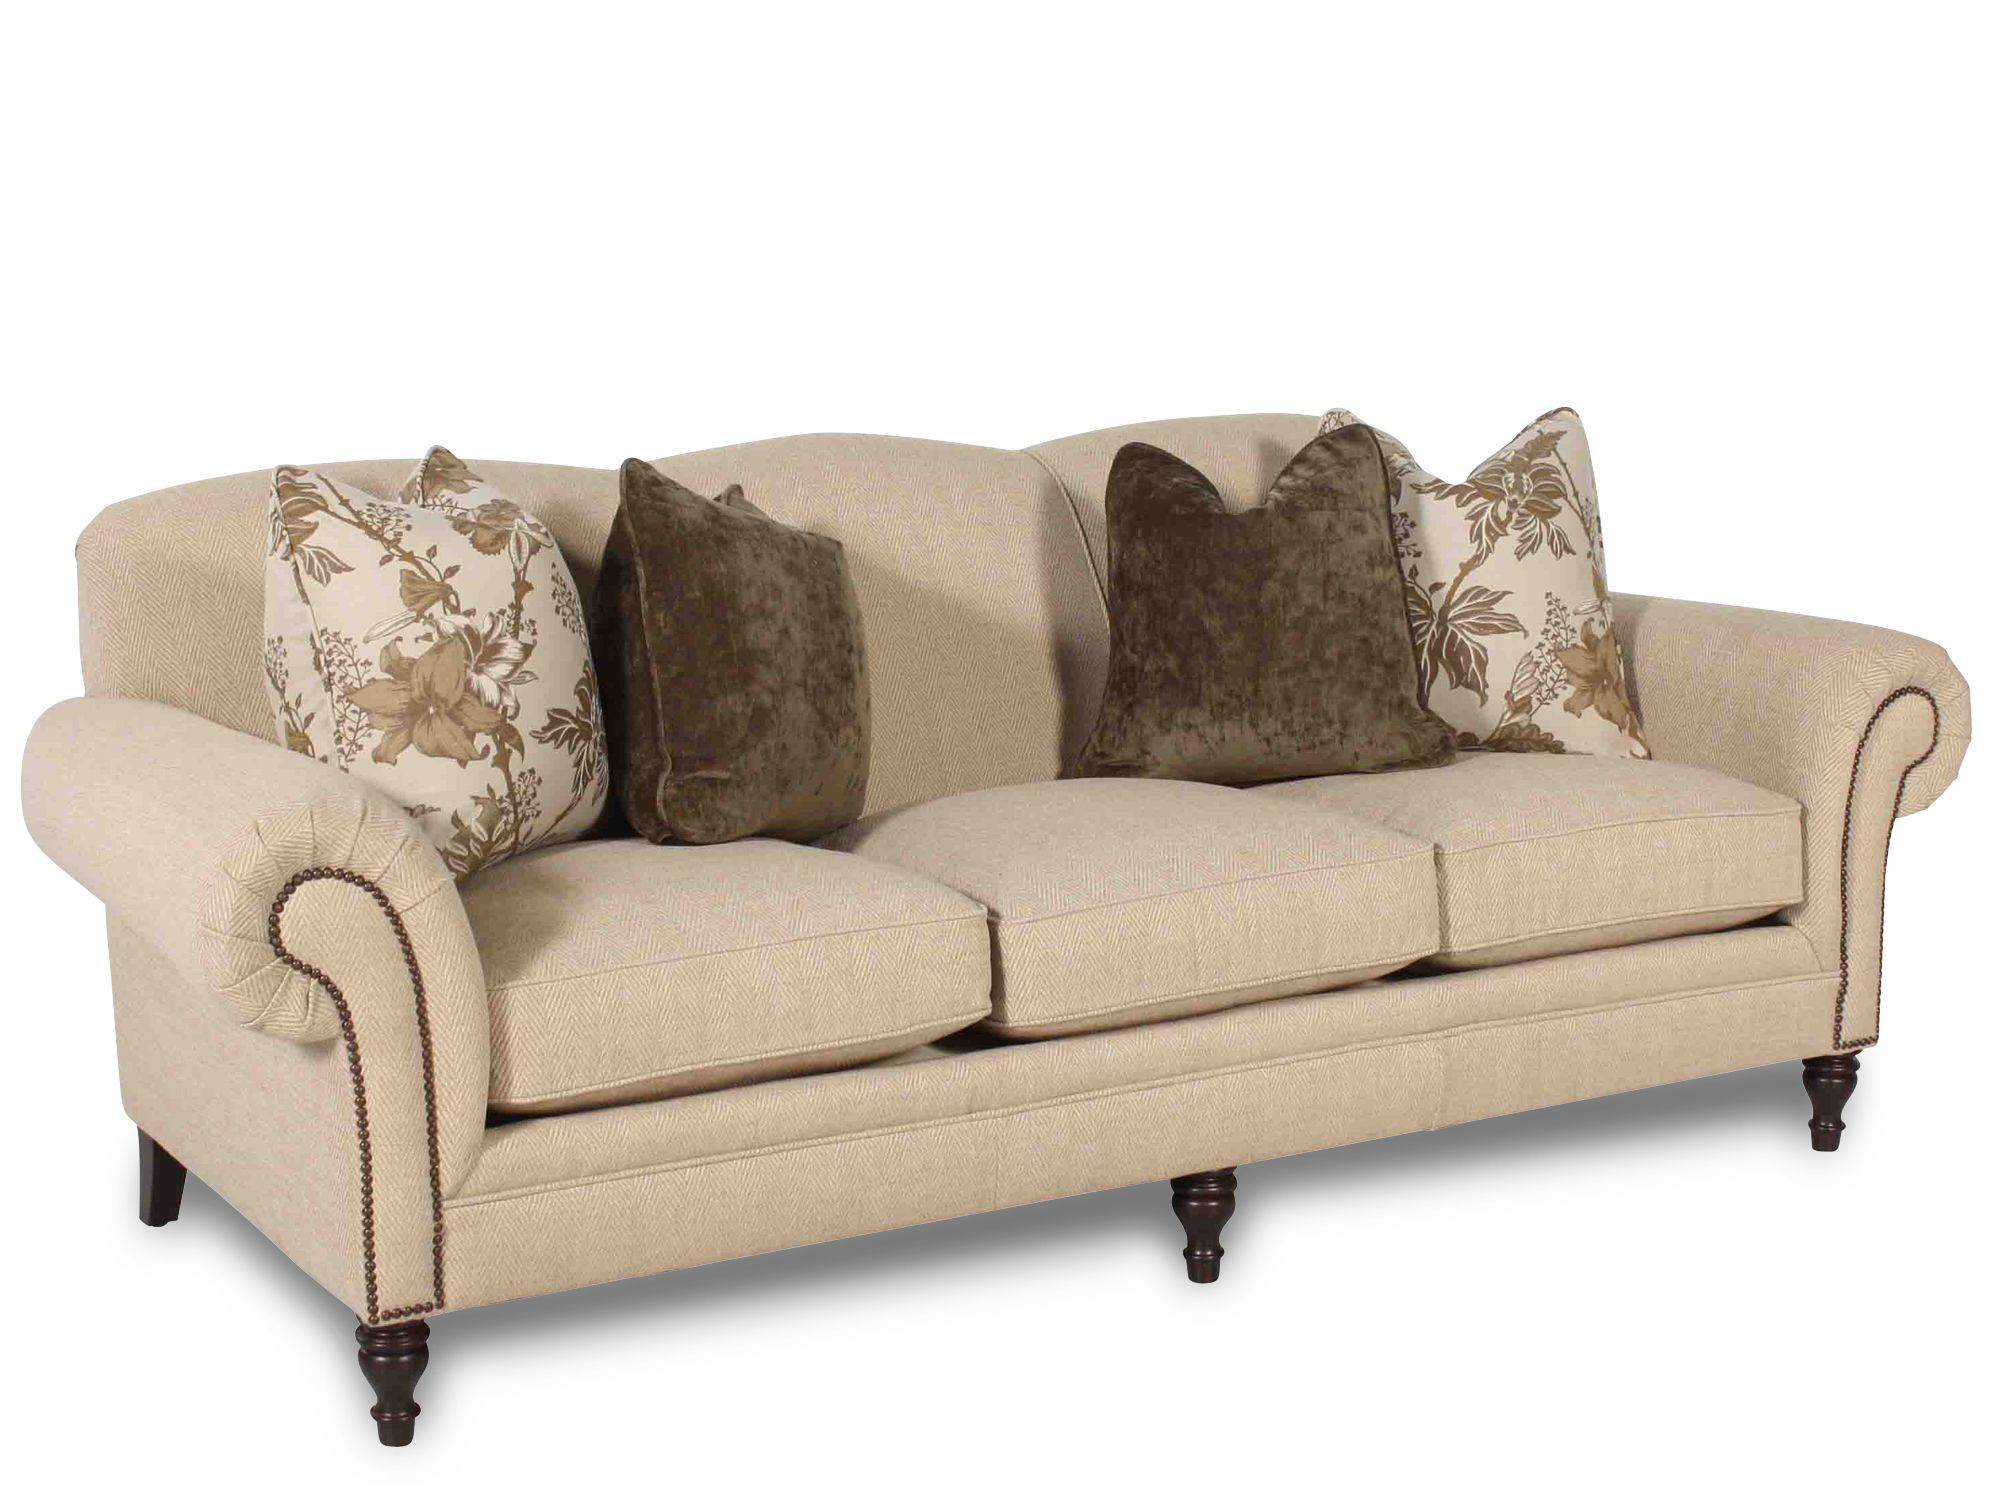 Fine Bernhardt Whitfield Sofa Minus Pillows Mix Match Home Interior And Landscaping Ponolsignezvosmurscom